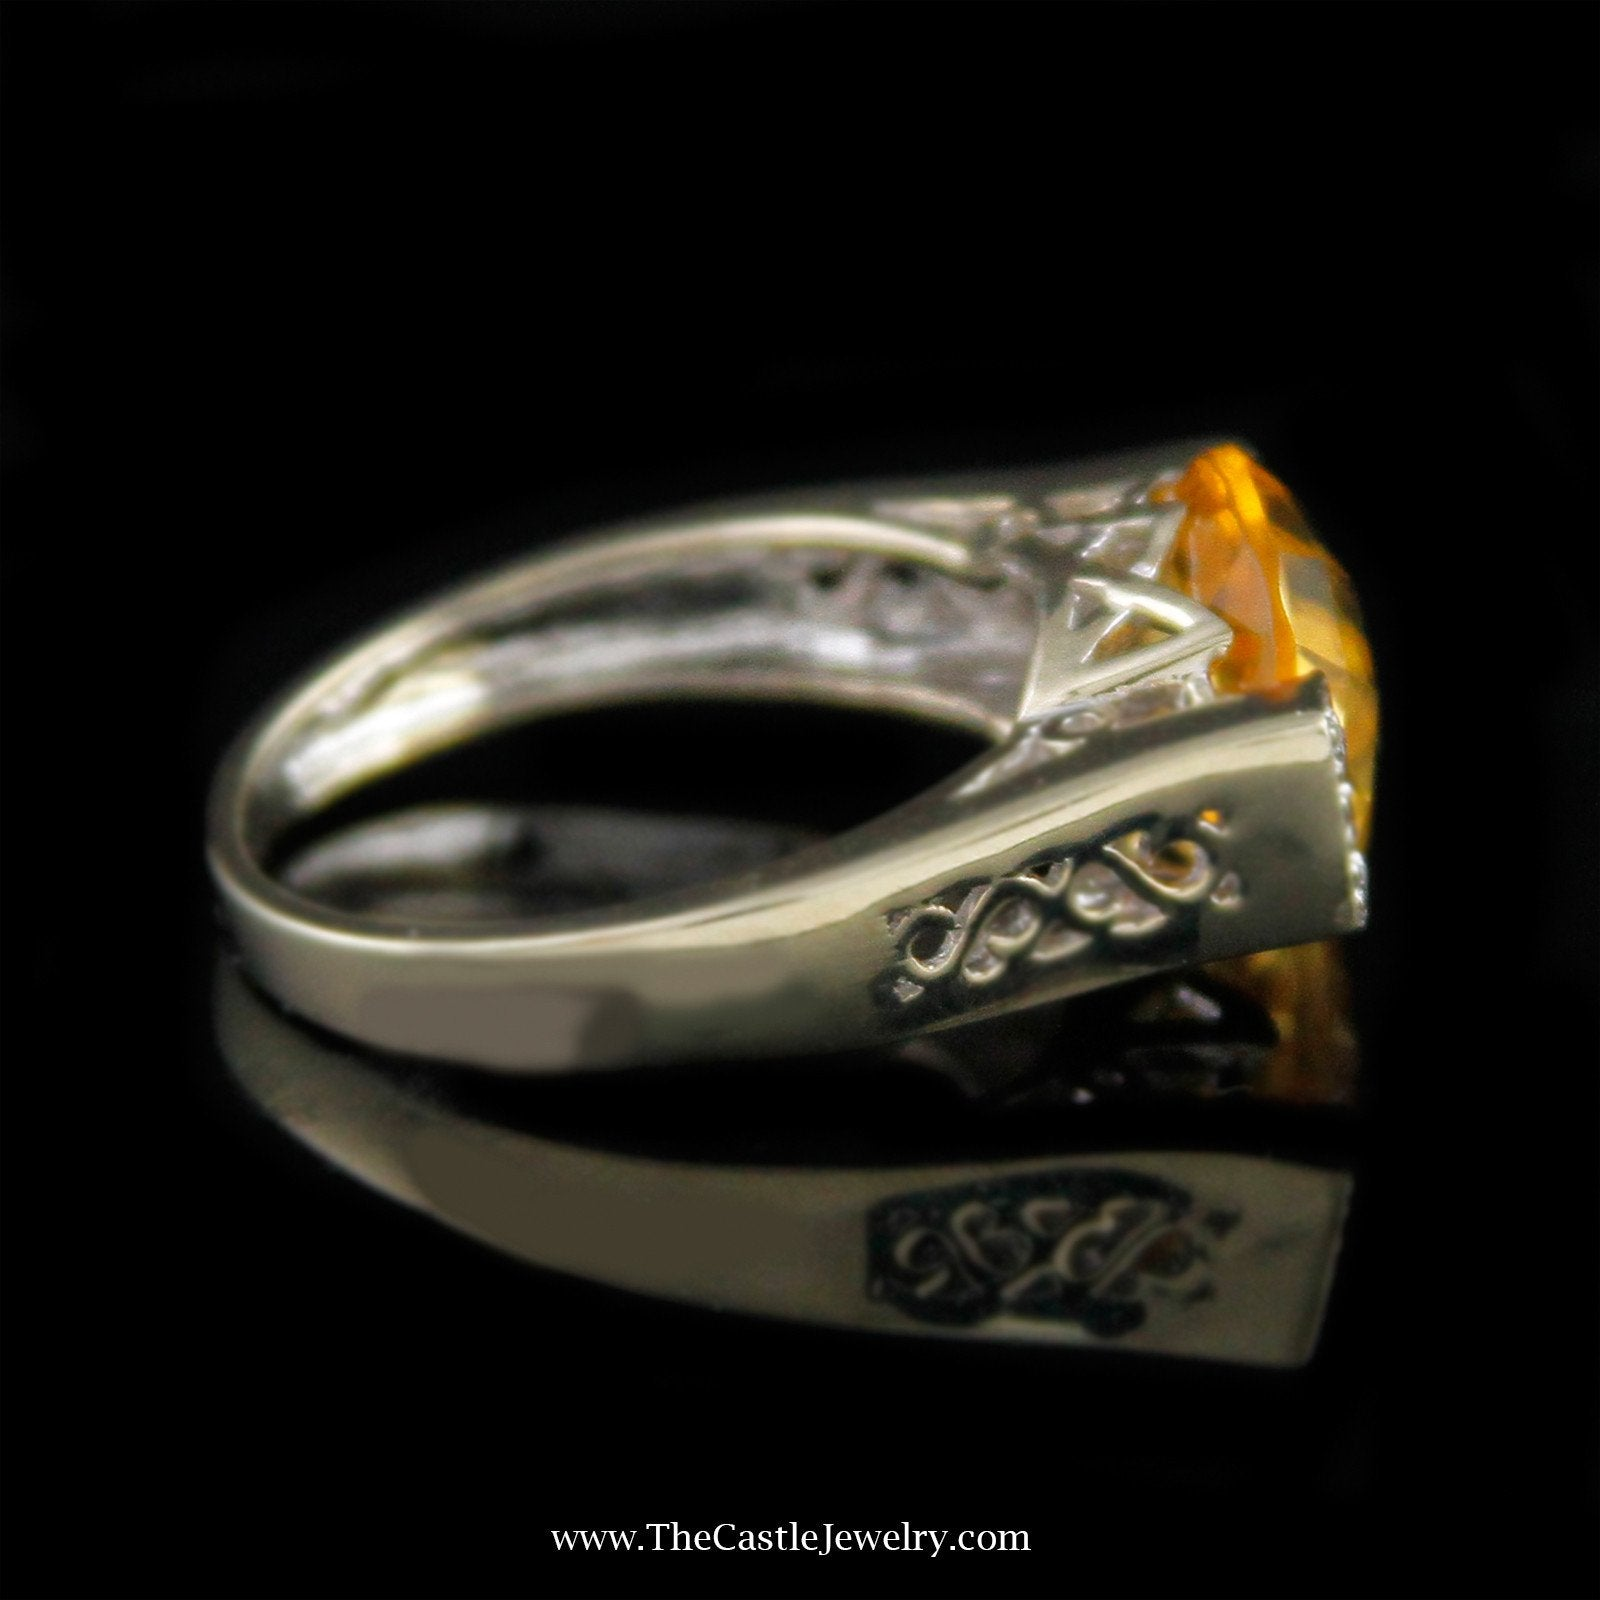 Oval Fantasy Cut Citrine Ring with Round Diamond Sides in 14K White Gold-2